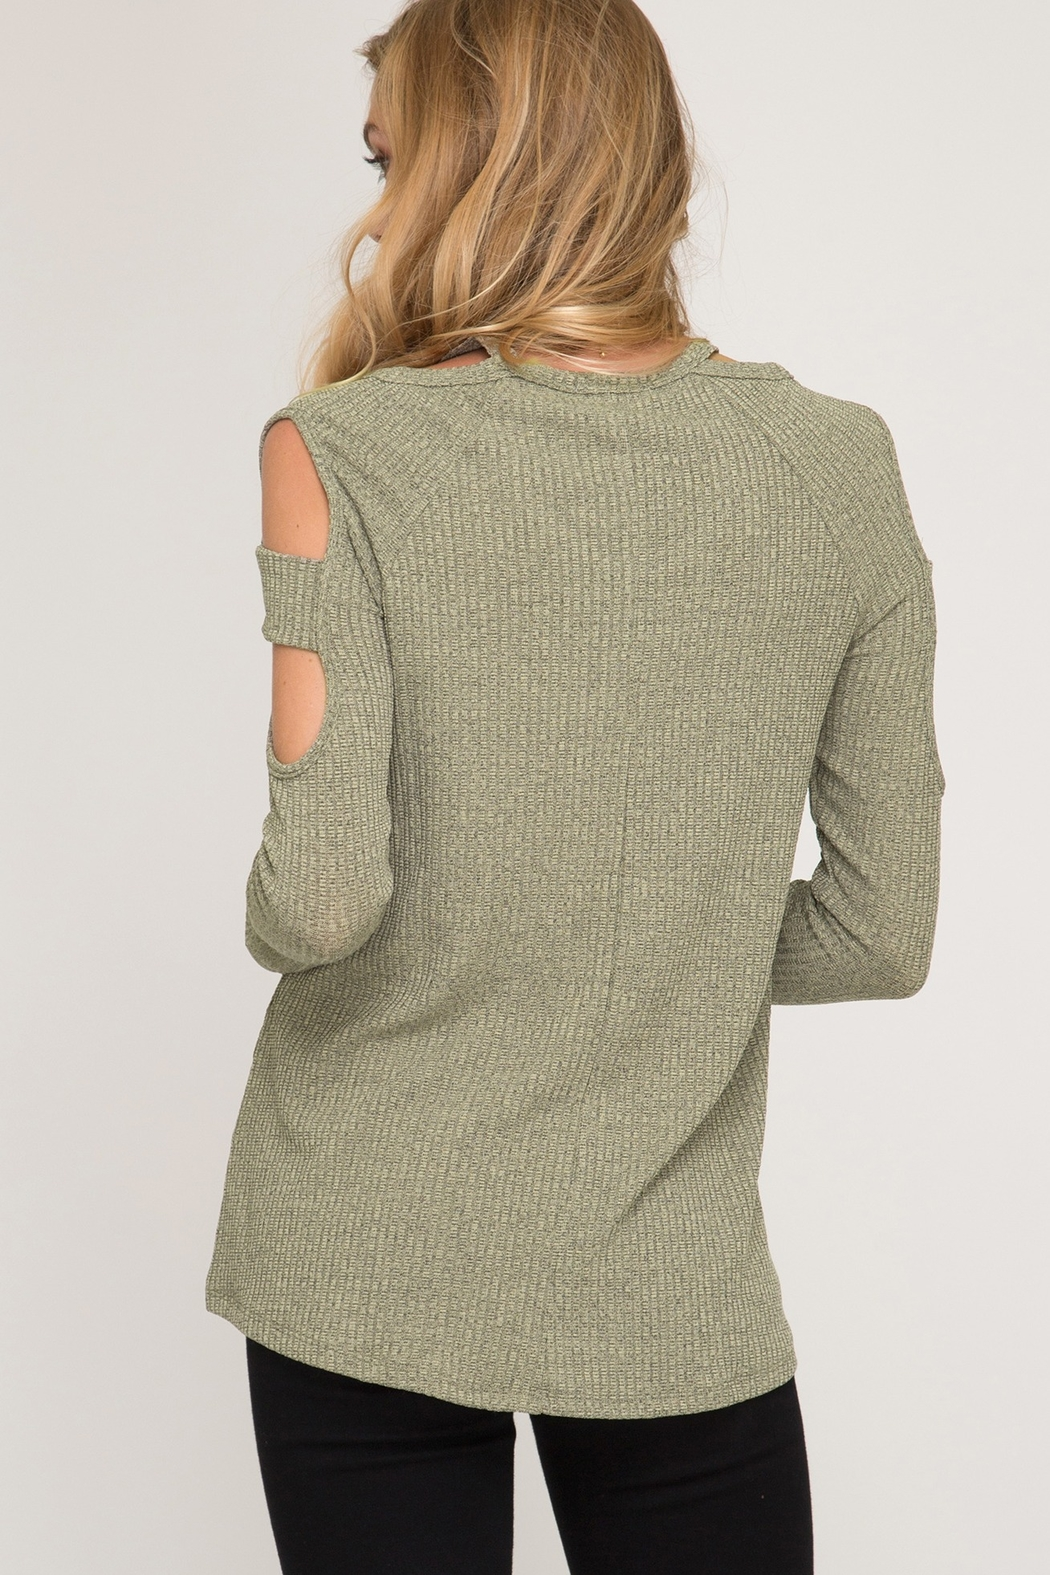 She and Sky LONG SLEEVE TWO TONE RIBBED TOP - Front Full Image